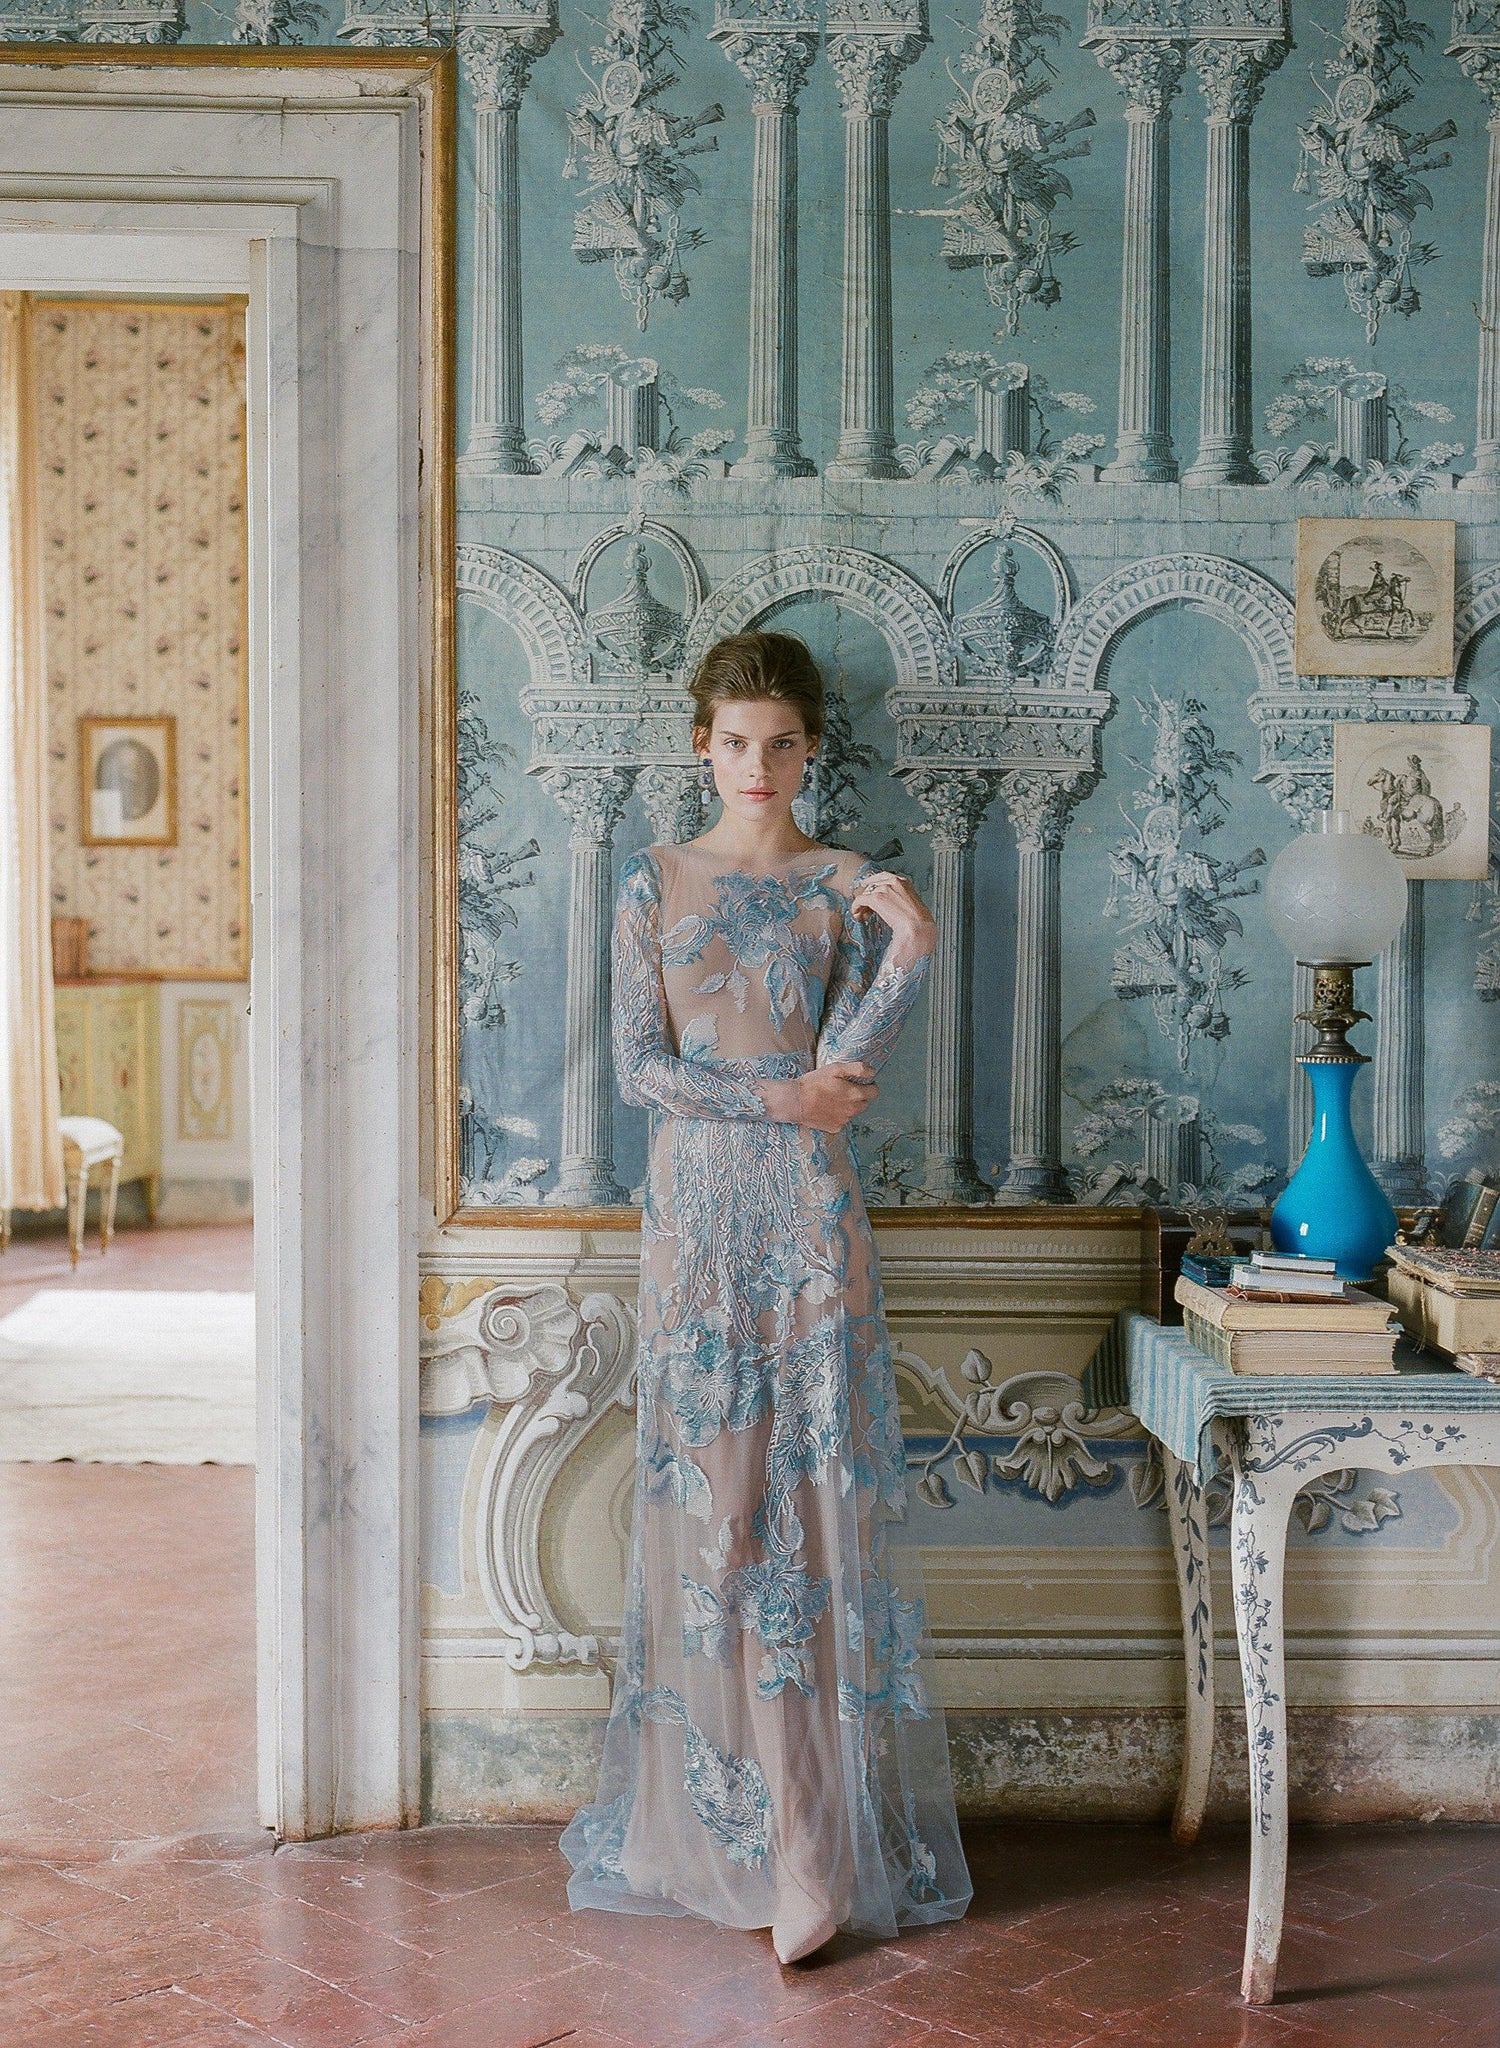 women standing wearing a blue lace dress at Villa di geggiano in Siena Italy